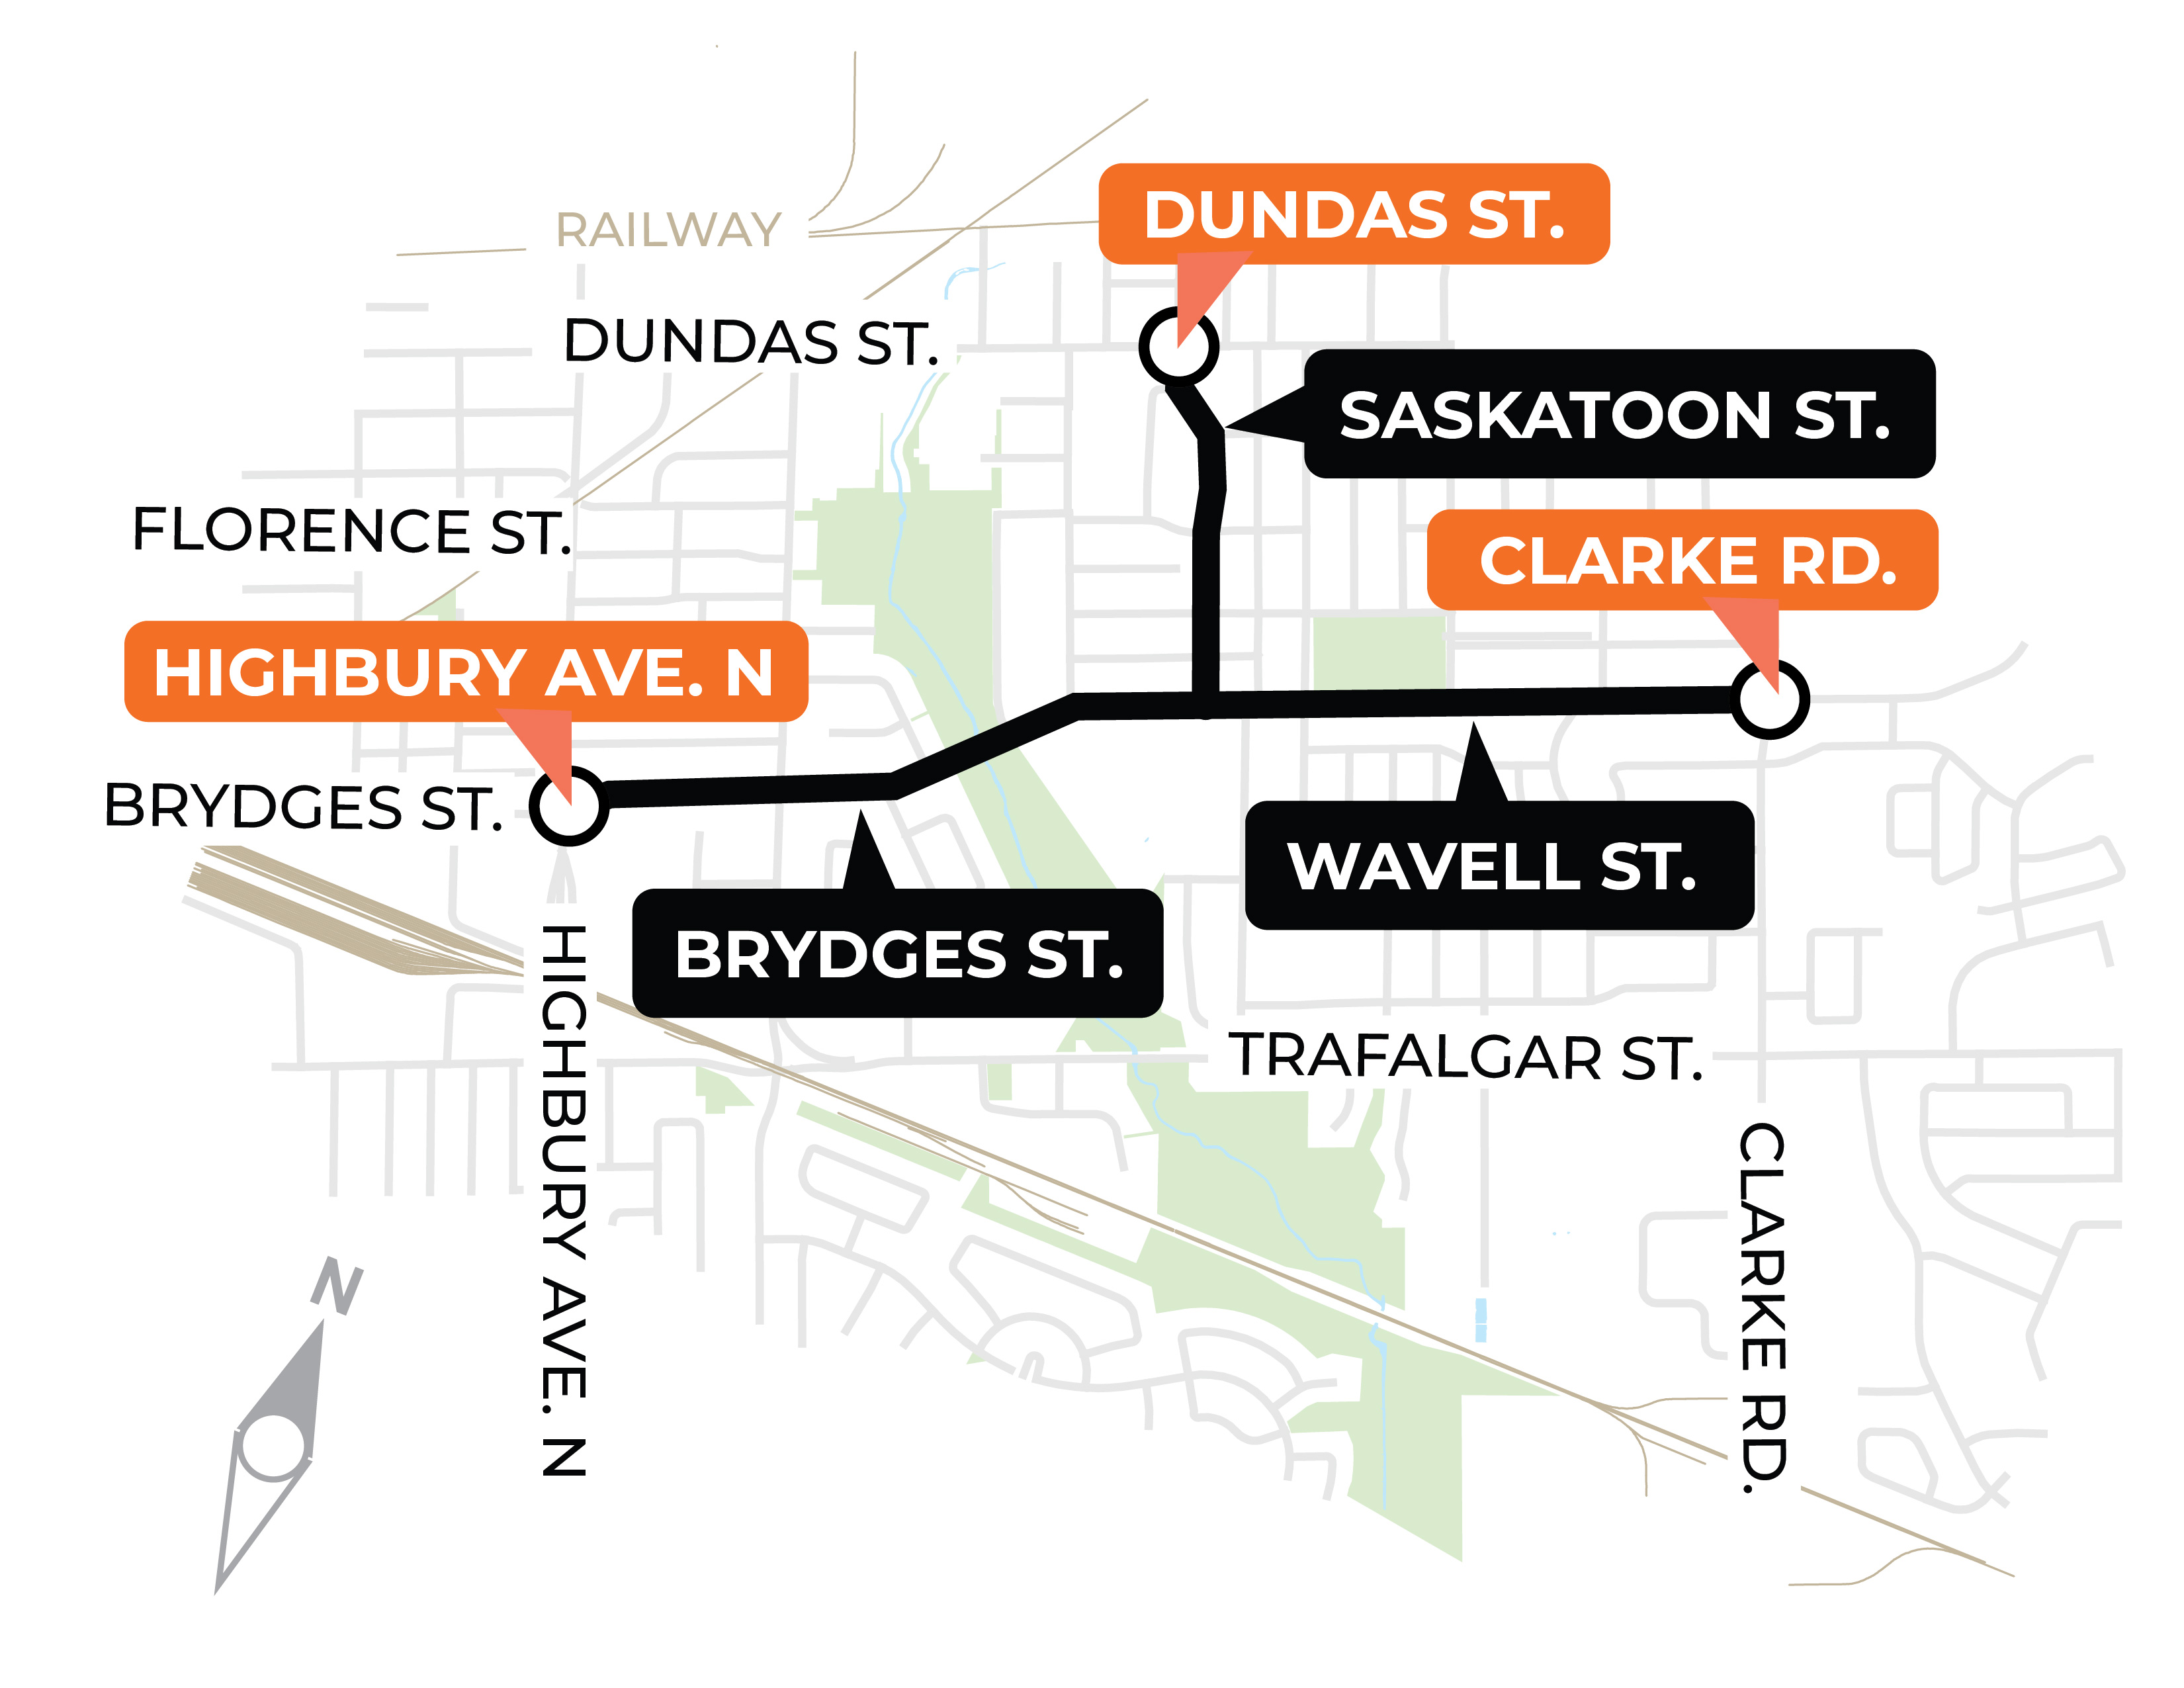 The City will be making improvements on Brydges Street and Wavell Street between Highbury Avenue North and Clarke Road. Work will also take place on Saskatoon Street between Wavell Street and Dundas Street. For more information, please contact Trevor Hitchon at thitchon@london.ca or by calling 519-661-2489 x 5925